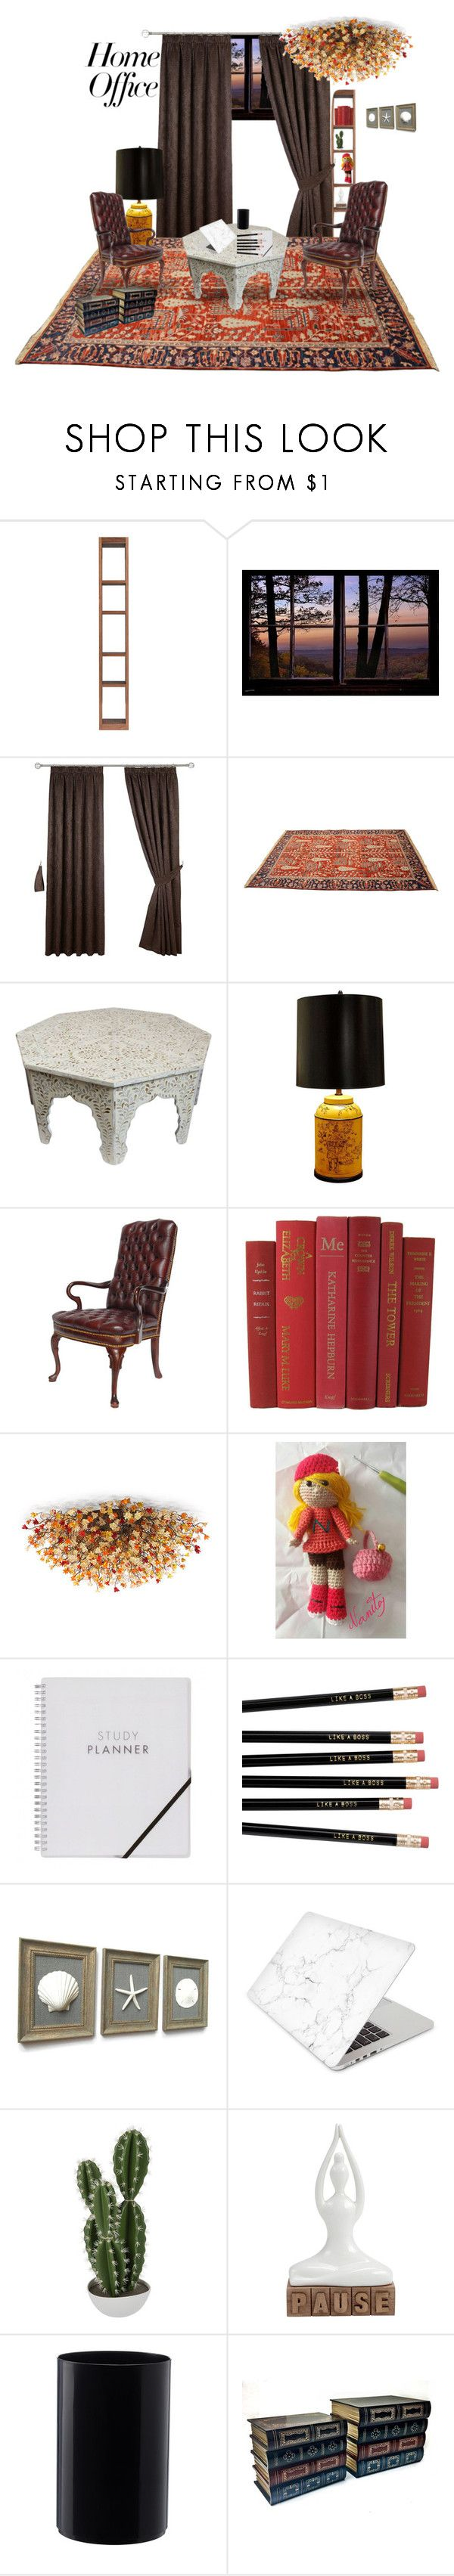 """""""My home office"""" by nanitas23 ❤ liked on Polyvore featuring interior, interiors, interior design, home, home decor, interior decorating, Frederick Cooper, Recover, Abigail Ahern and home office"""